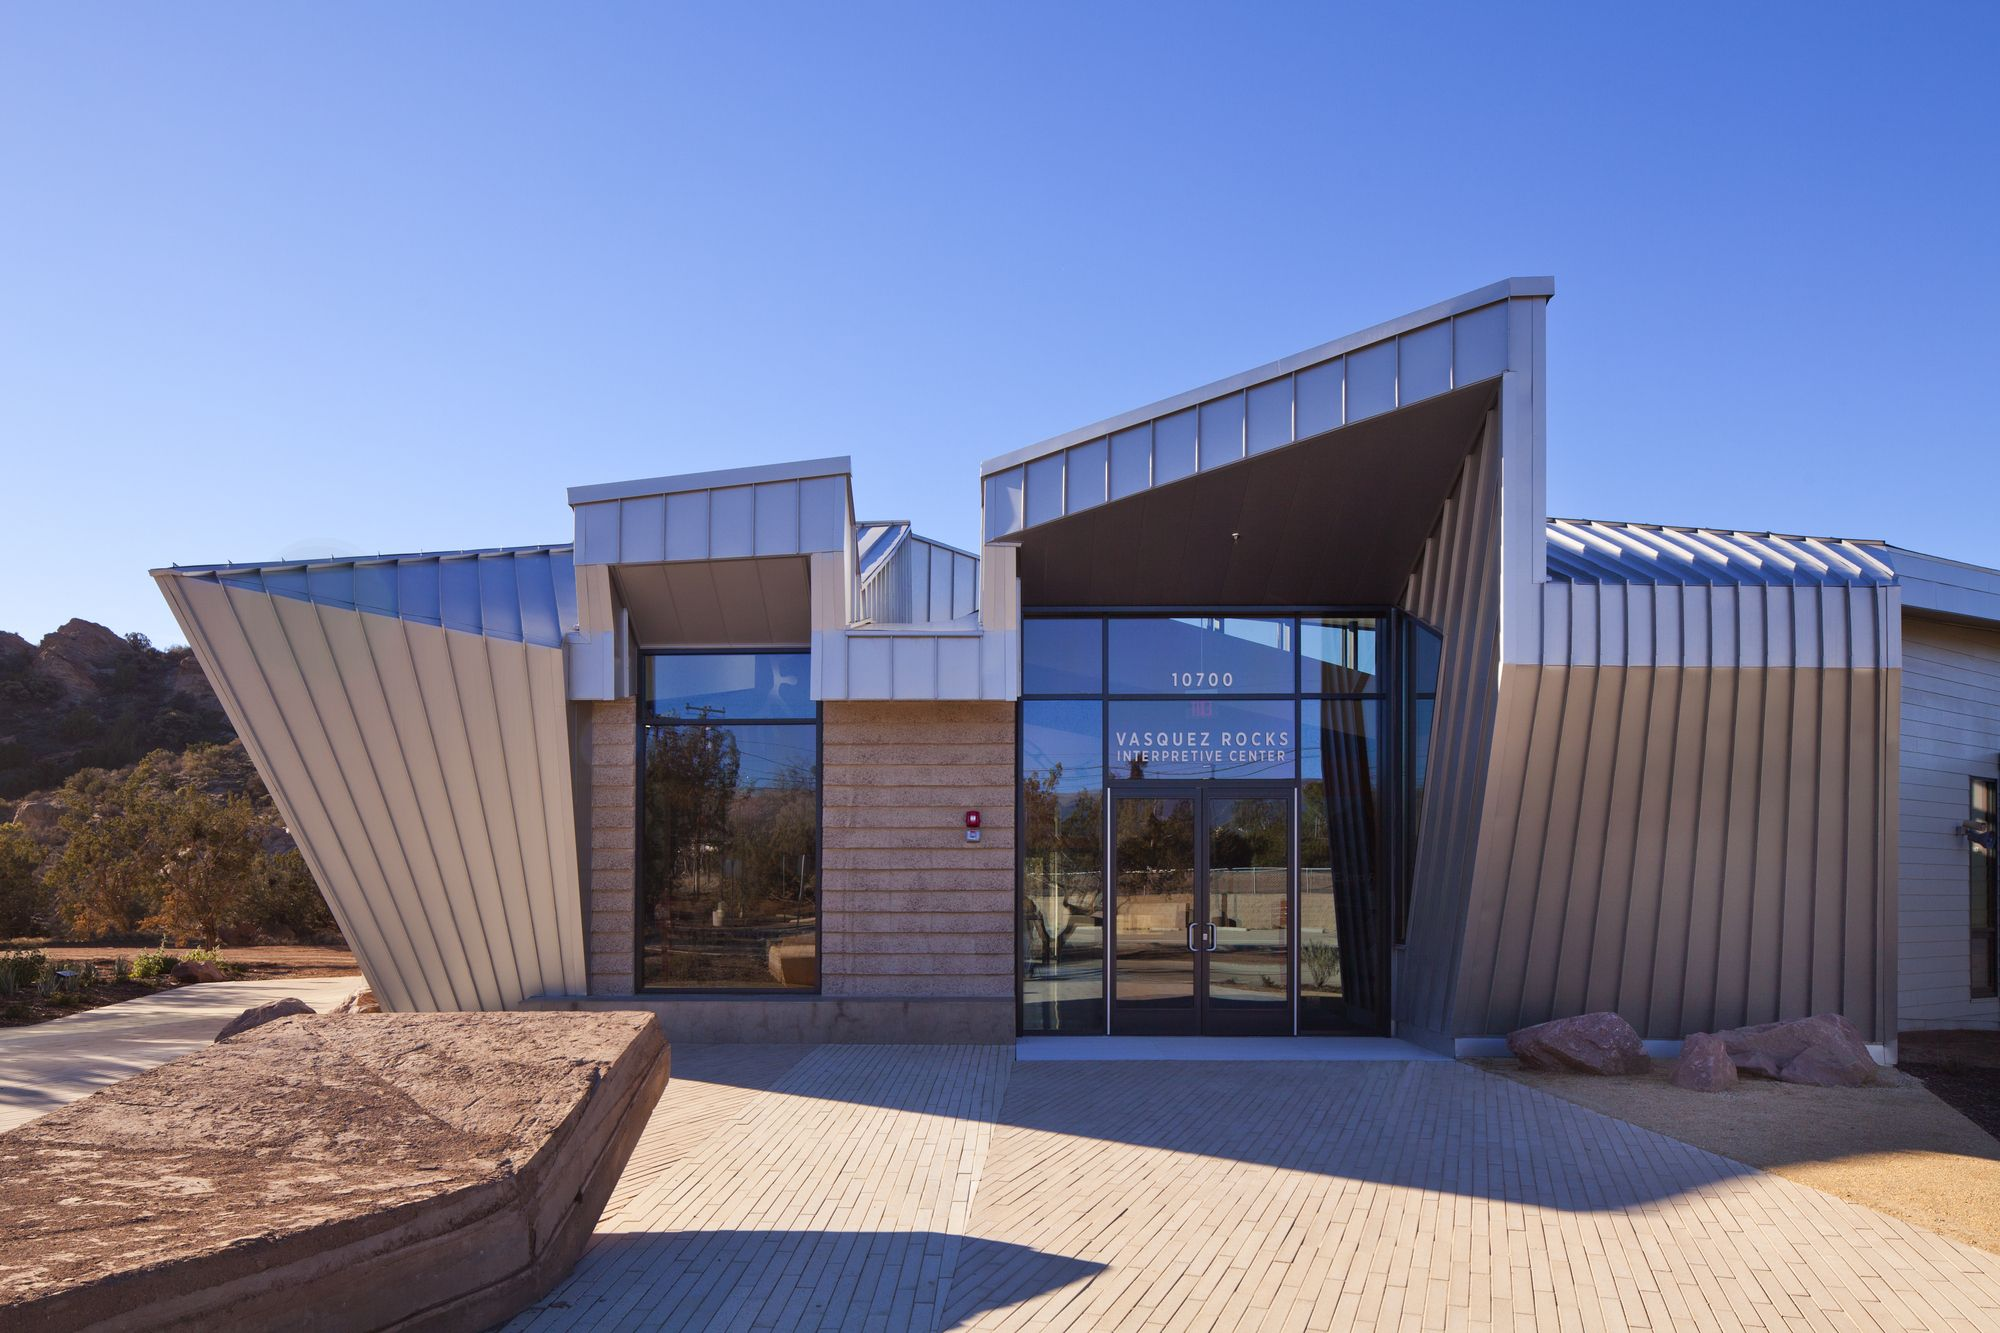 Gallery - 4 Los Angeles Architectural Awards Honor Drought-Conscious Design - 4